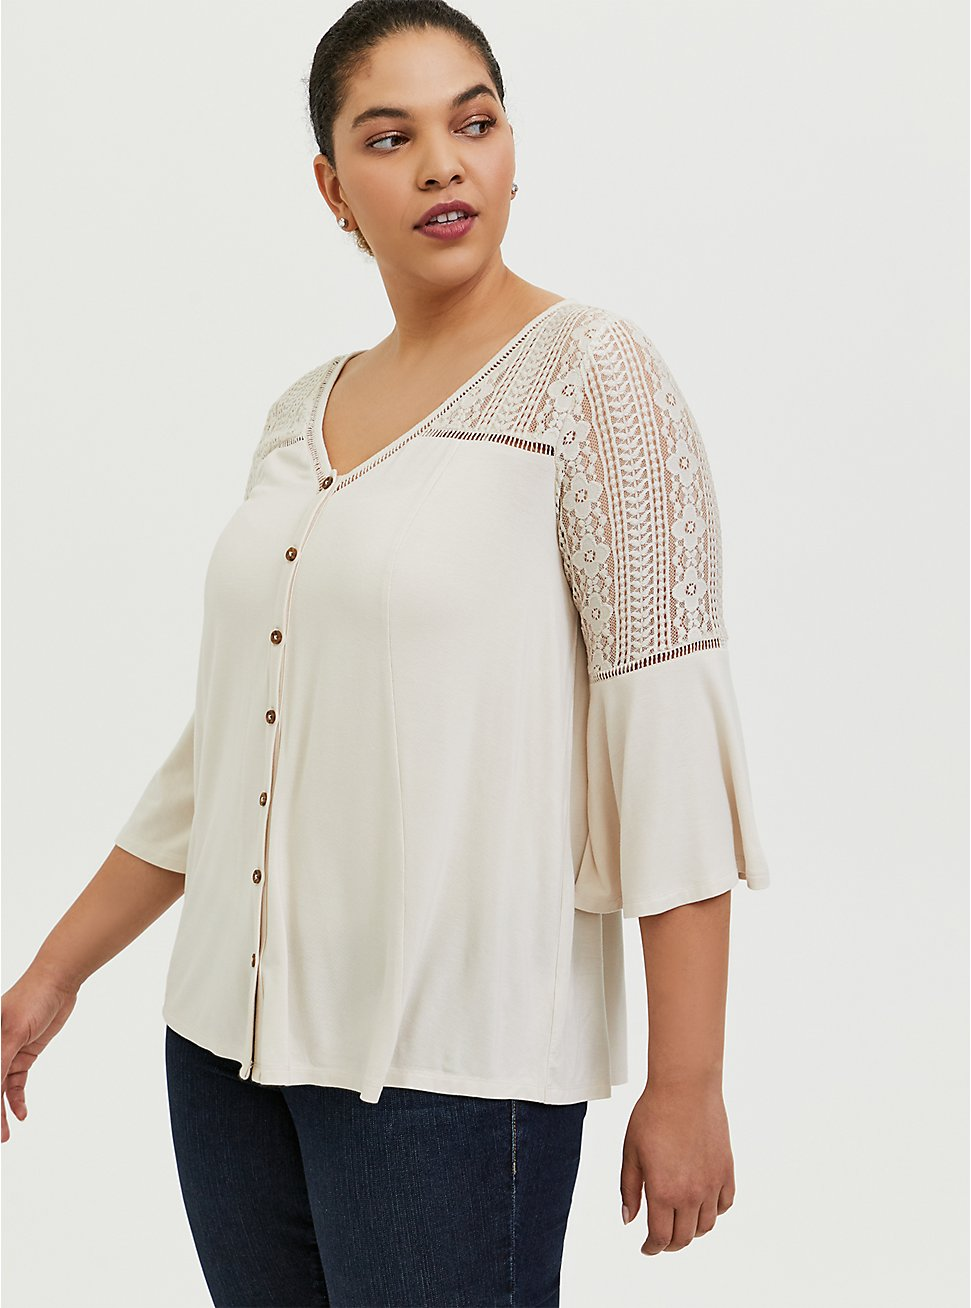 Super Soft Ivory Lace Bell Sleeve Top, BIRCH, hi-res